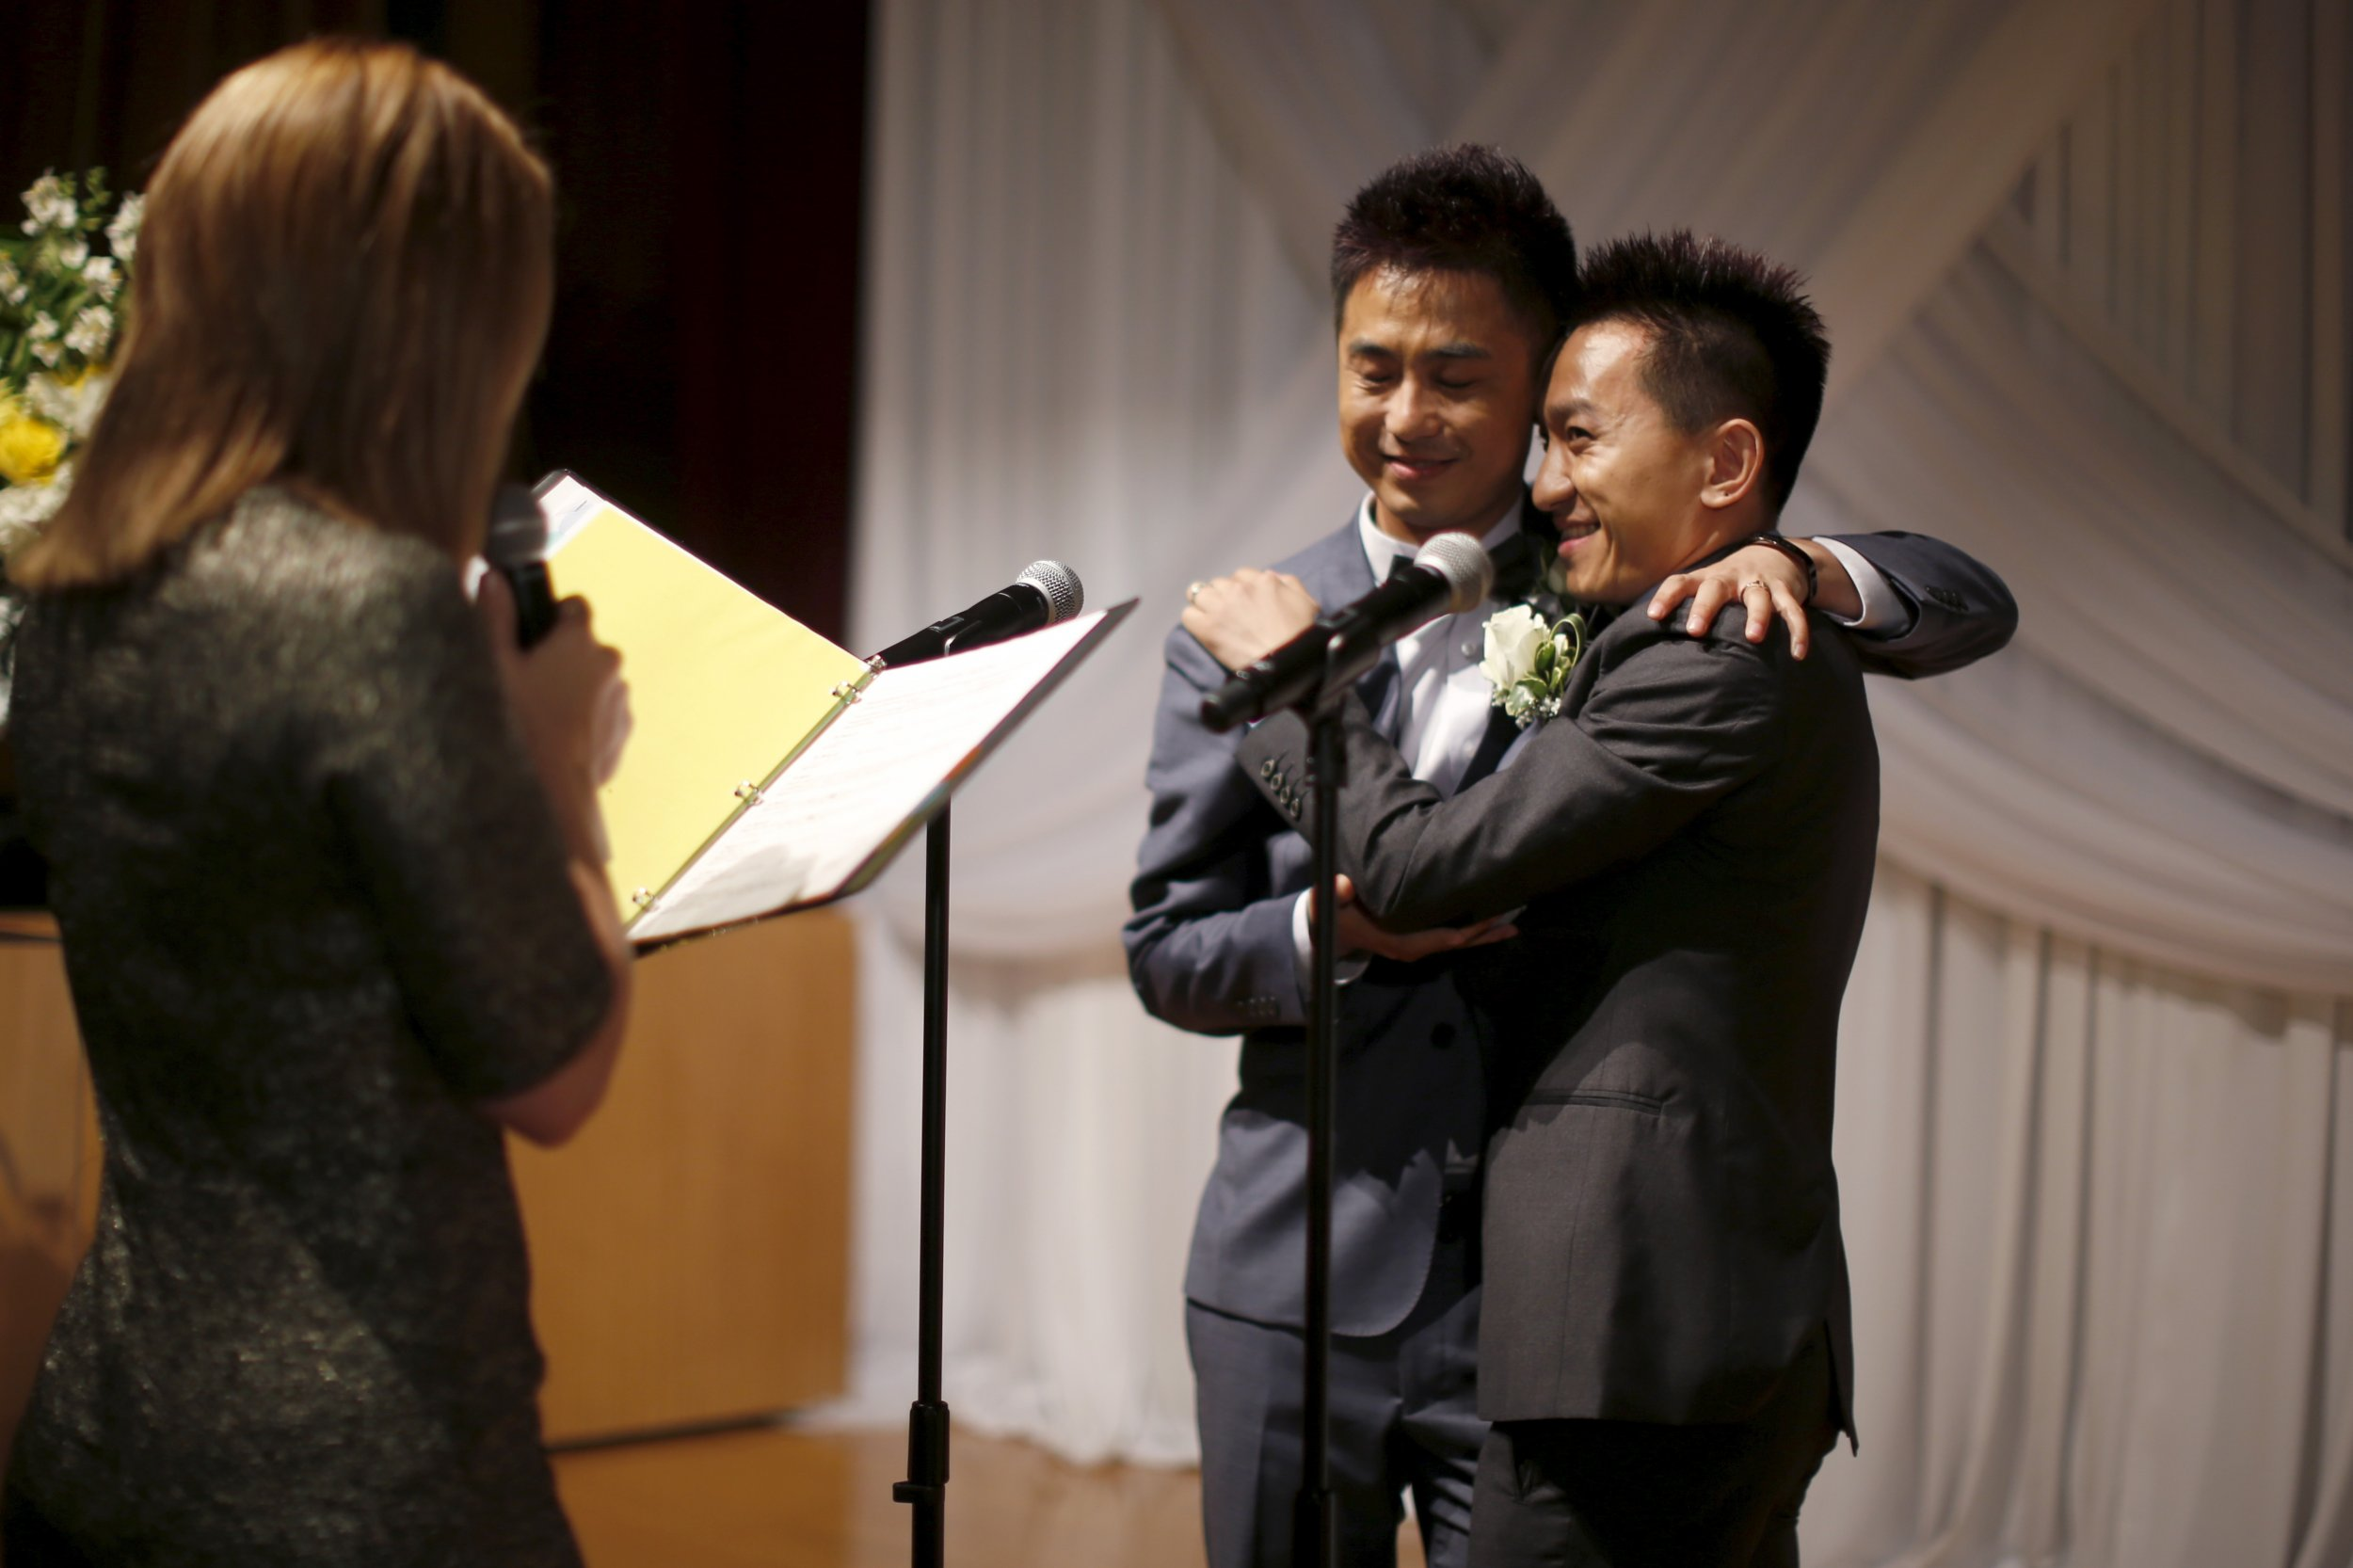 Here are Some of the First Gay Couples Marry After Supreme Court Decision